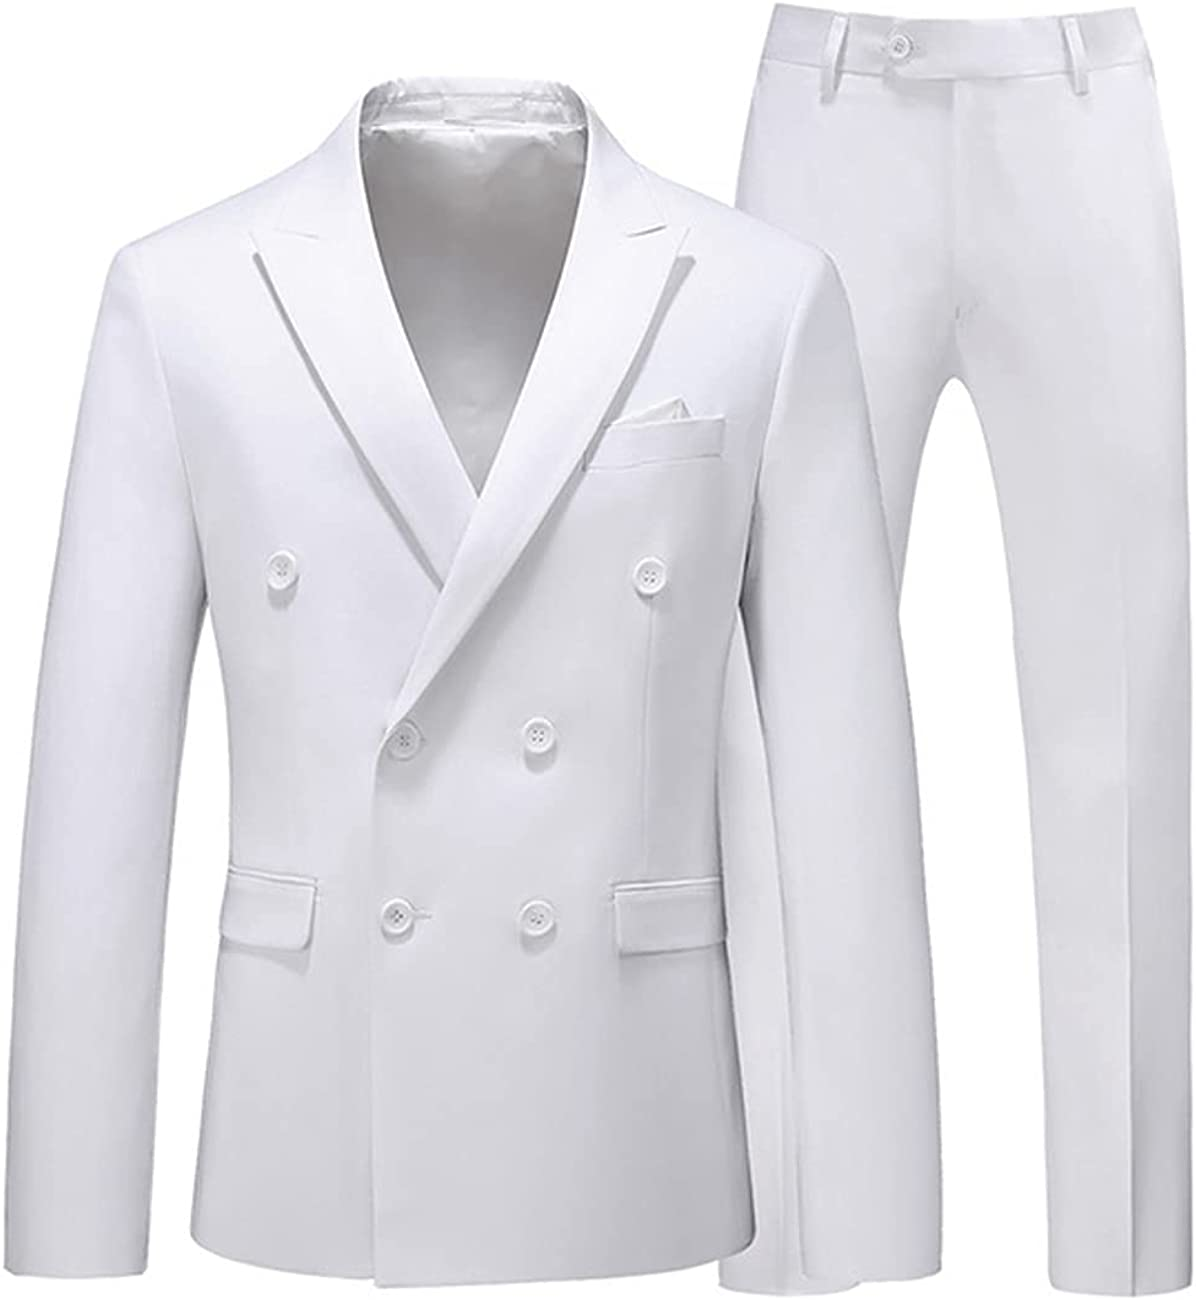 Seattle Mall werp Men's Suit 2 Piece Solid Tuxedo Slim Ja Double Breasted Fit Tulsa Mall